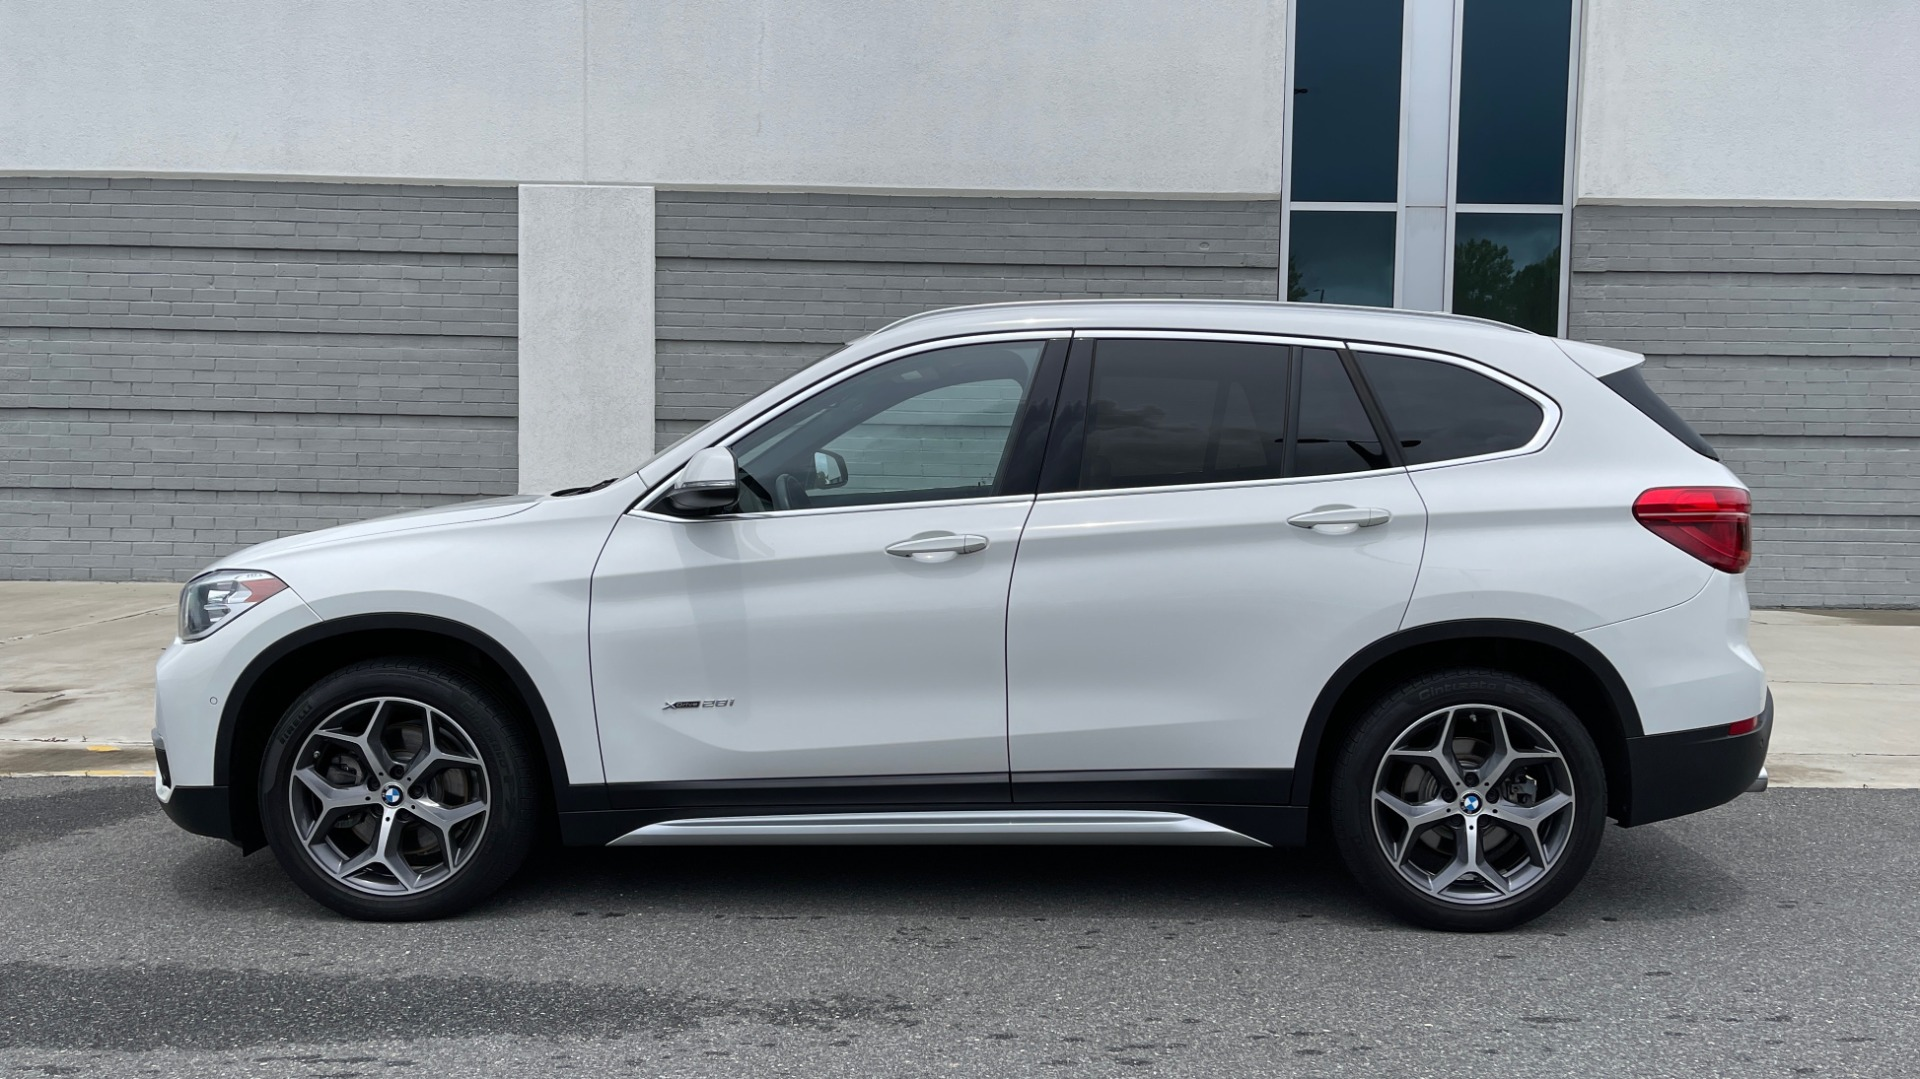 Used 2018 BMW X1 XDRIVE28I / CONV PKG / PANO-ROOF / HTD STS / PARK ASST / REARVIEW for sale $30,995 at Formula Imports in Charlotte NC 28227 4